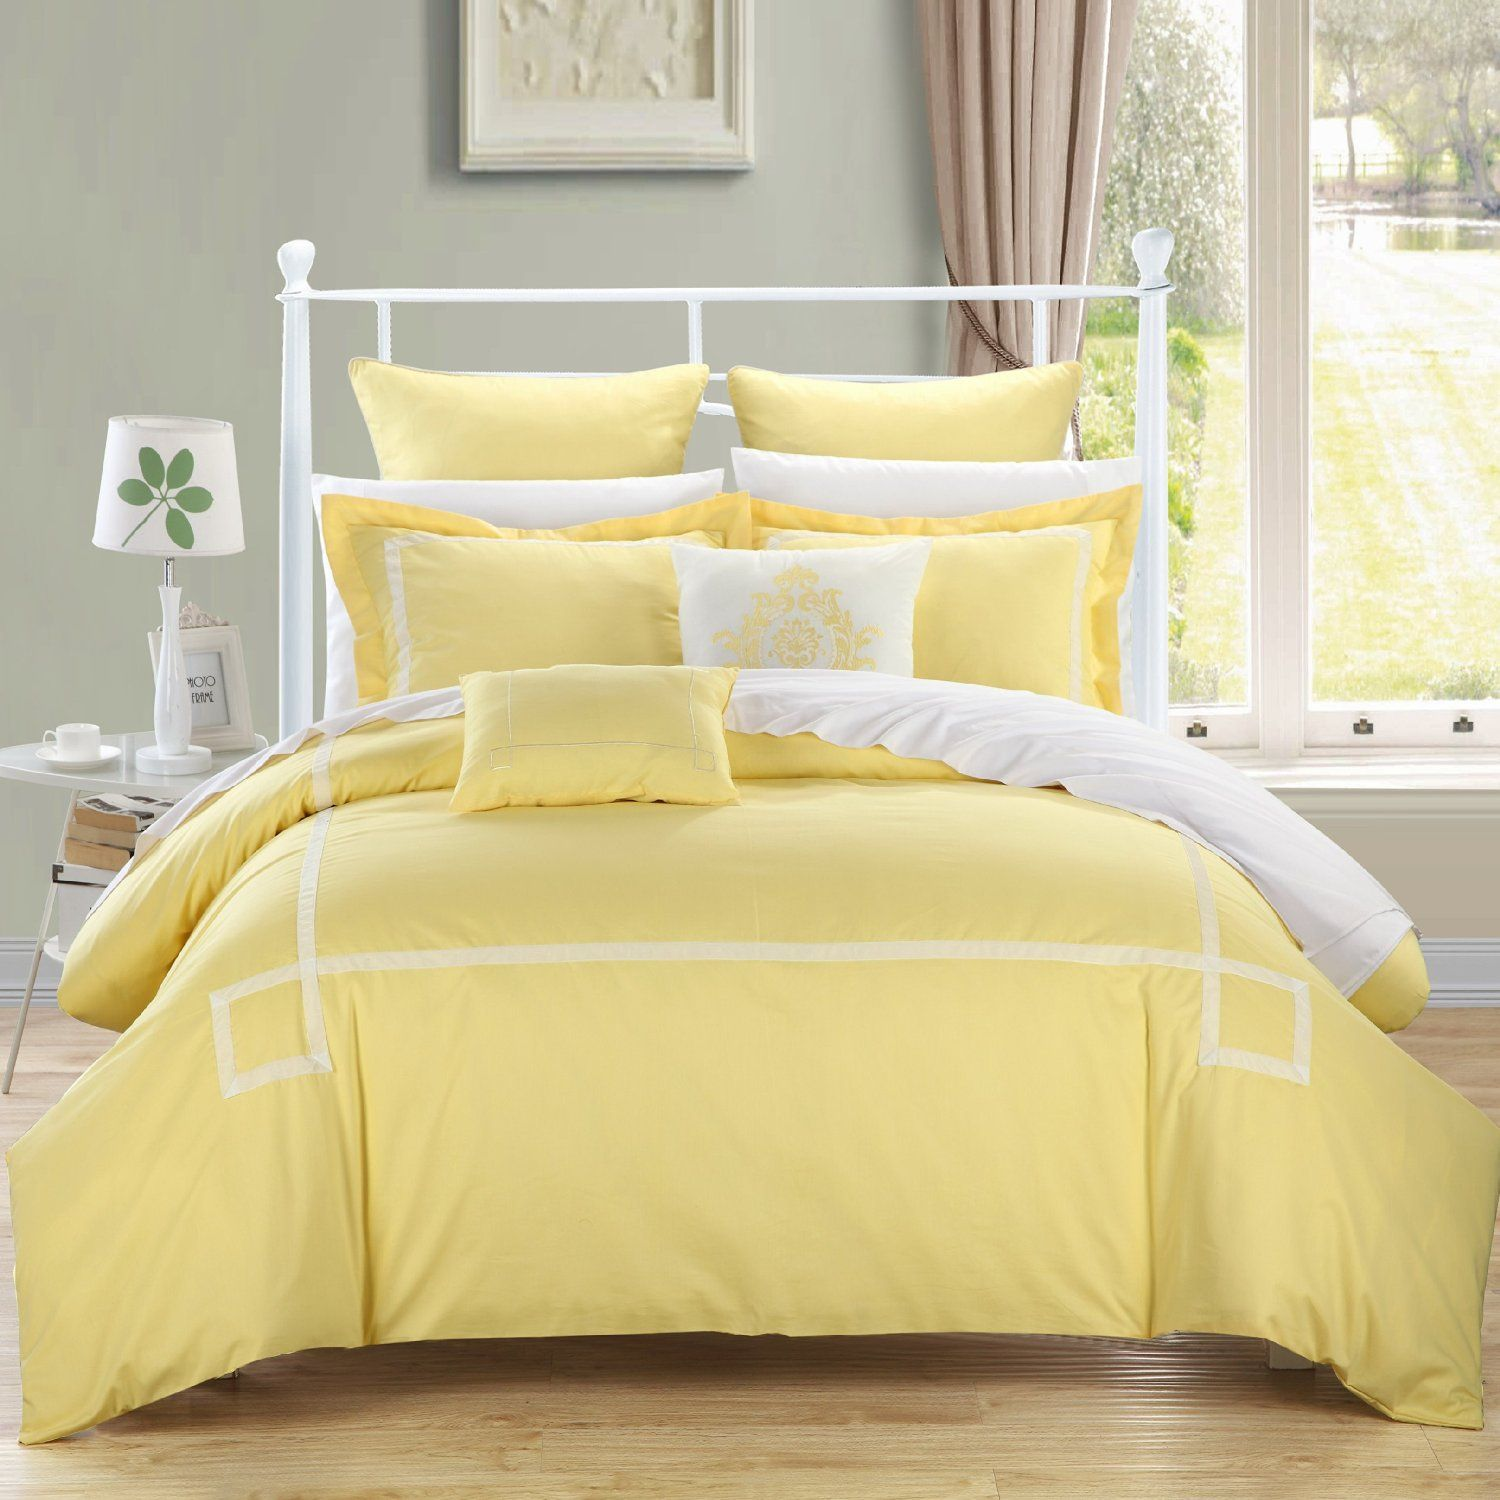 Elegant Yellow White Comforters Sets Yellow Bedding Sets You Ll Love Yellow Bedding Comforter Sets Yellow Comforter